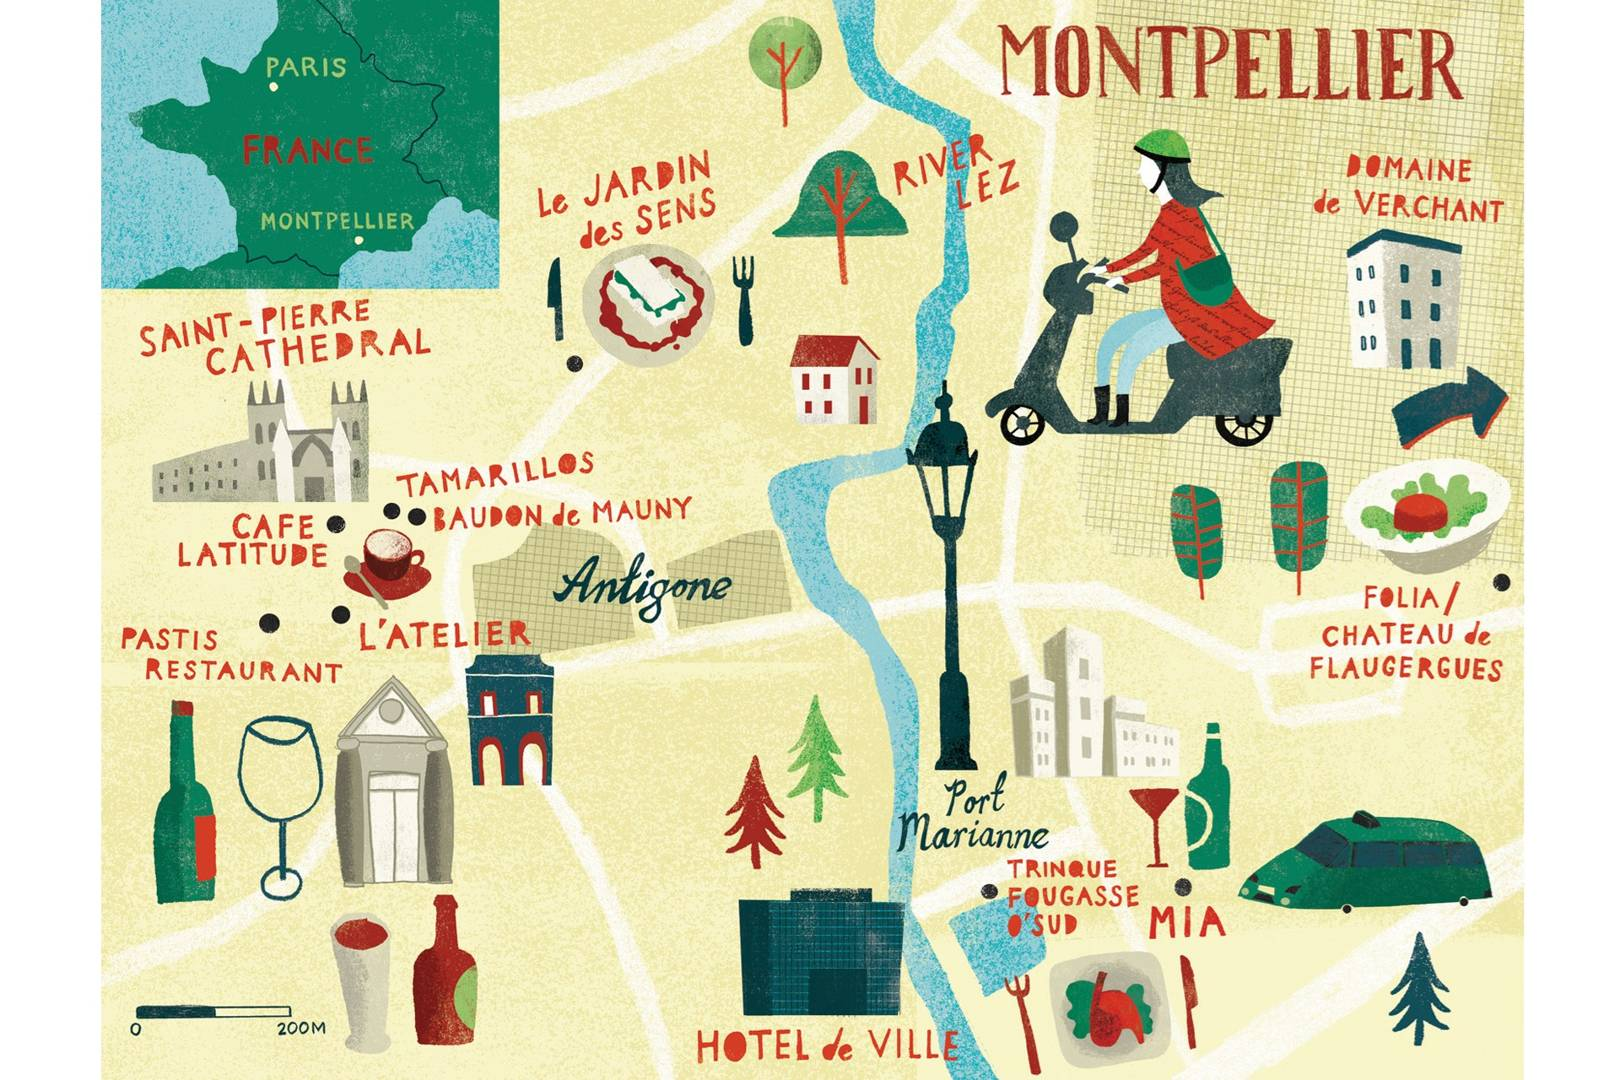 montpellier france map conde nast traveller 20may14 gary venn